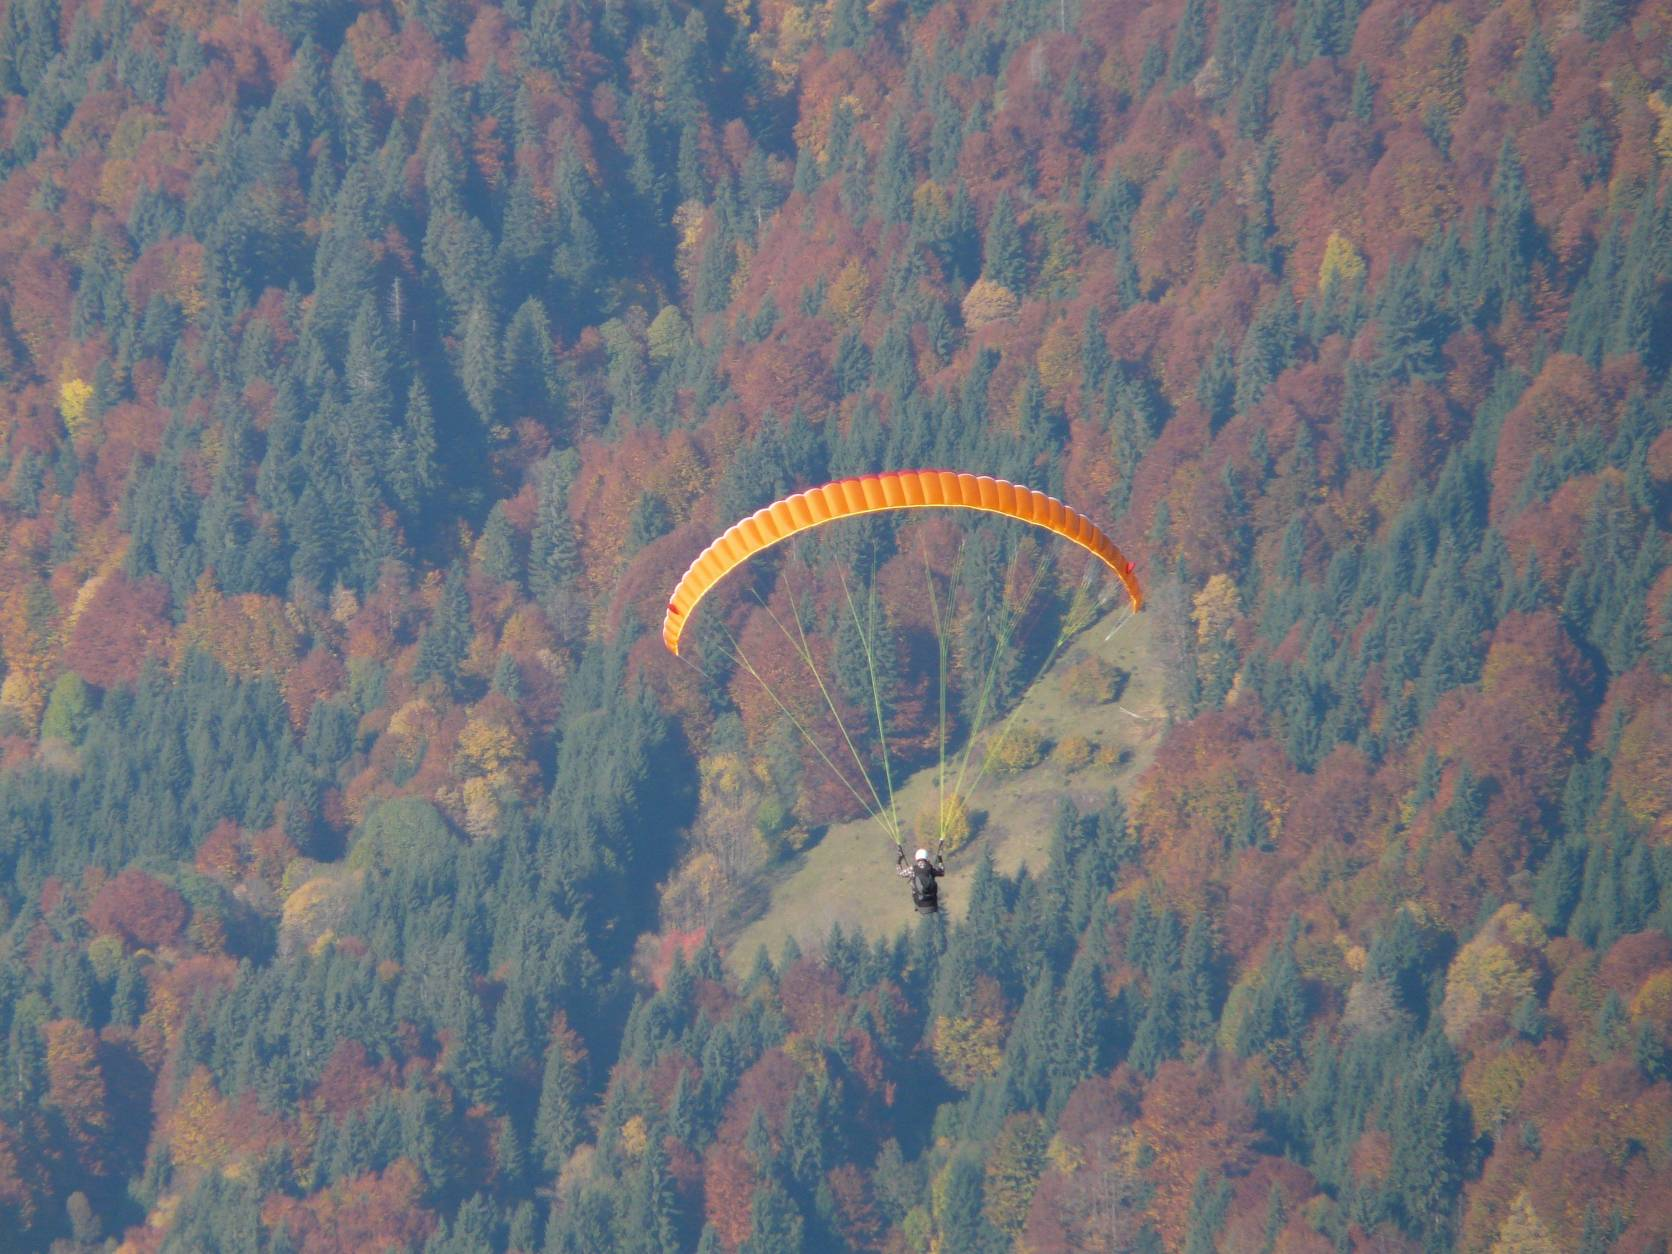 Paraglider_flight